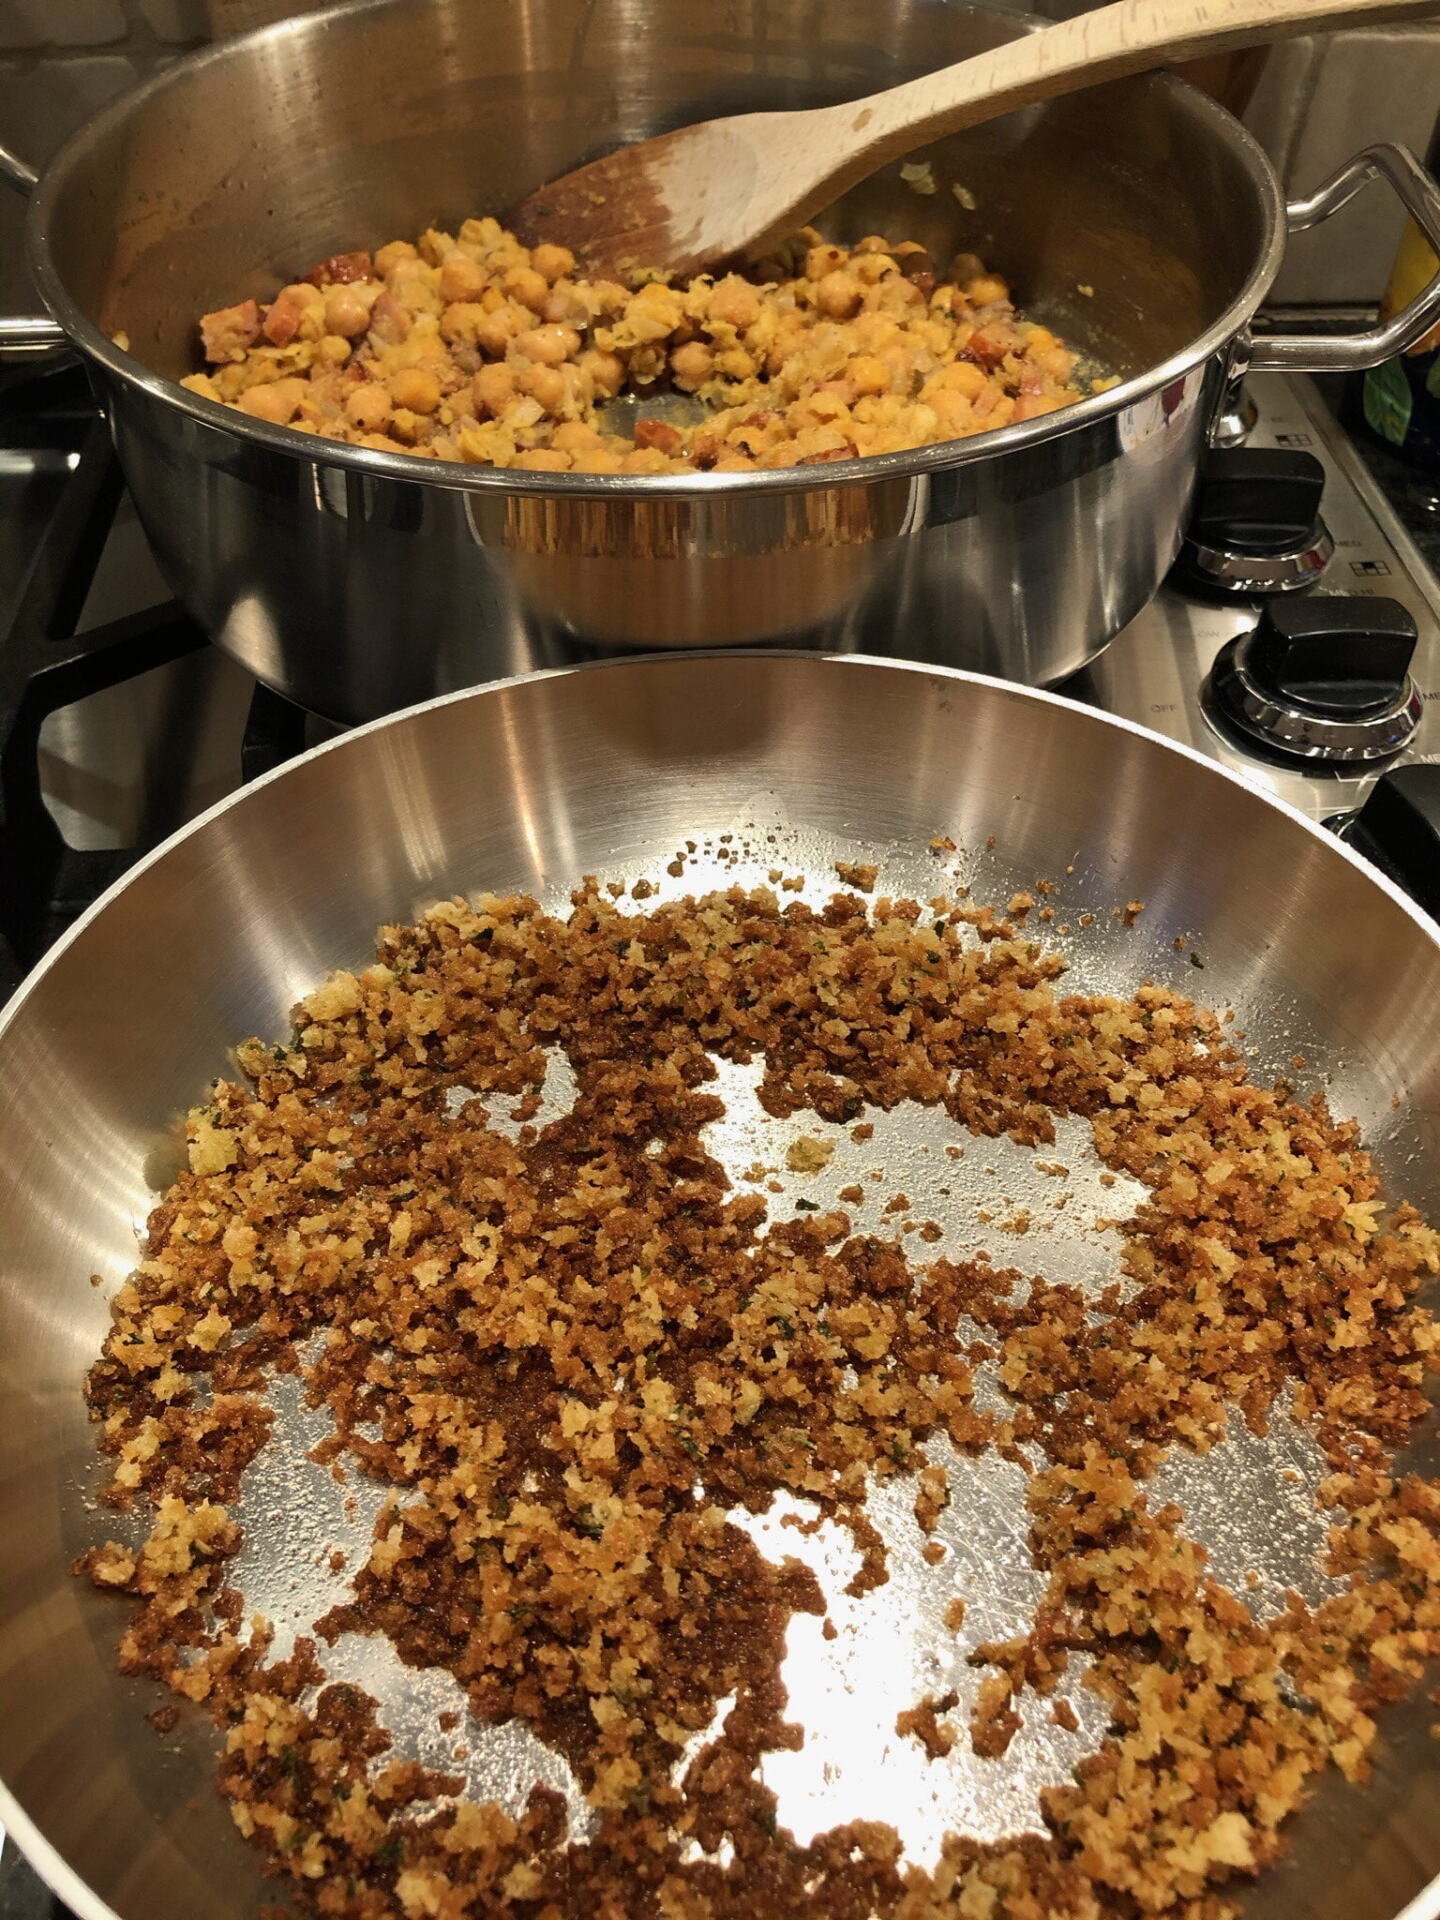 Chick peas and bread crumbs being toasted